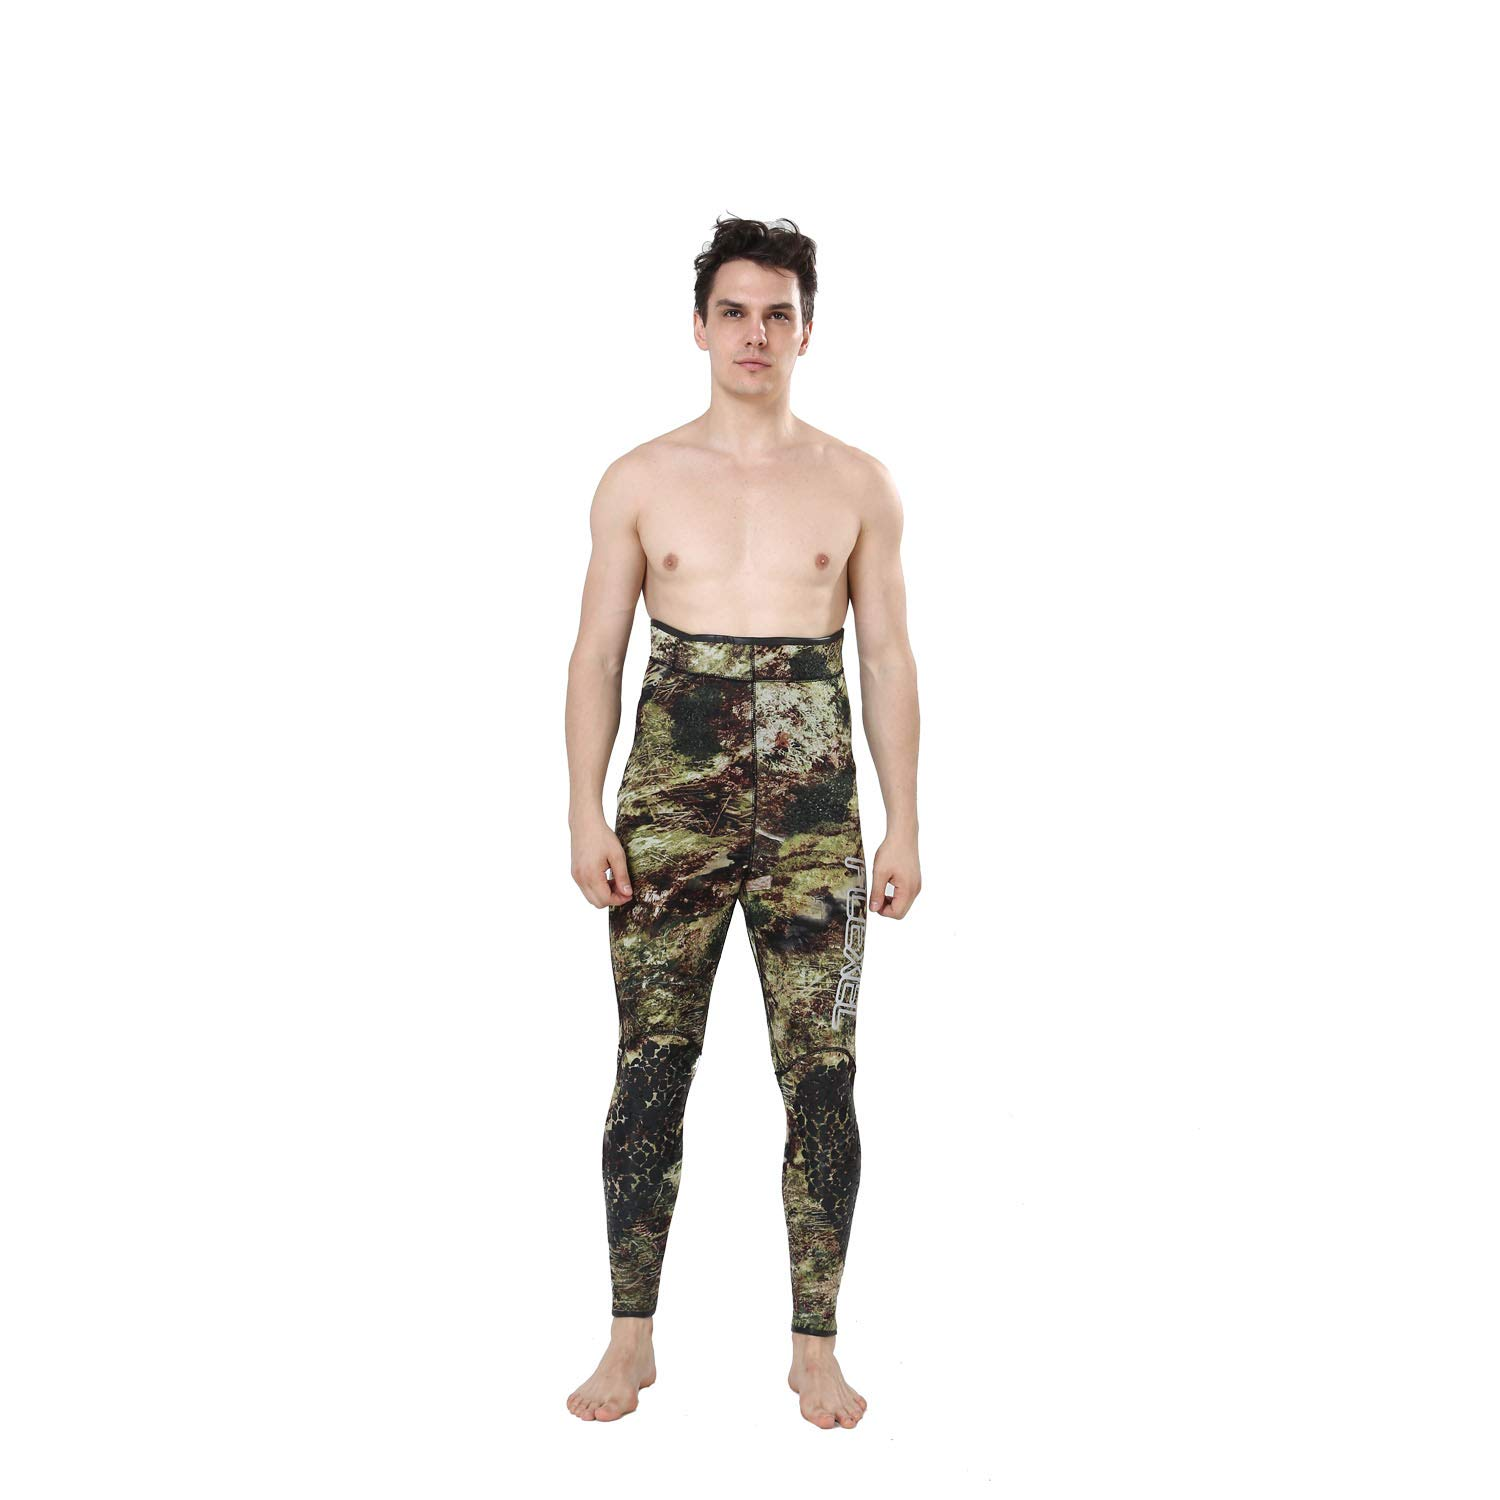 Flexel Camo Spearfishing Wetsuits Men Premium Camouflage Neoprene 2-Pieces Hoodie Freediving Fullsuit for Scuba Diving Snorkeling Swimming (7mm Grass camo, Large) by Flexel (Image #6)